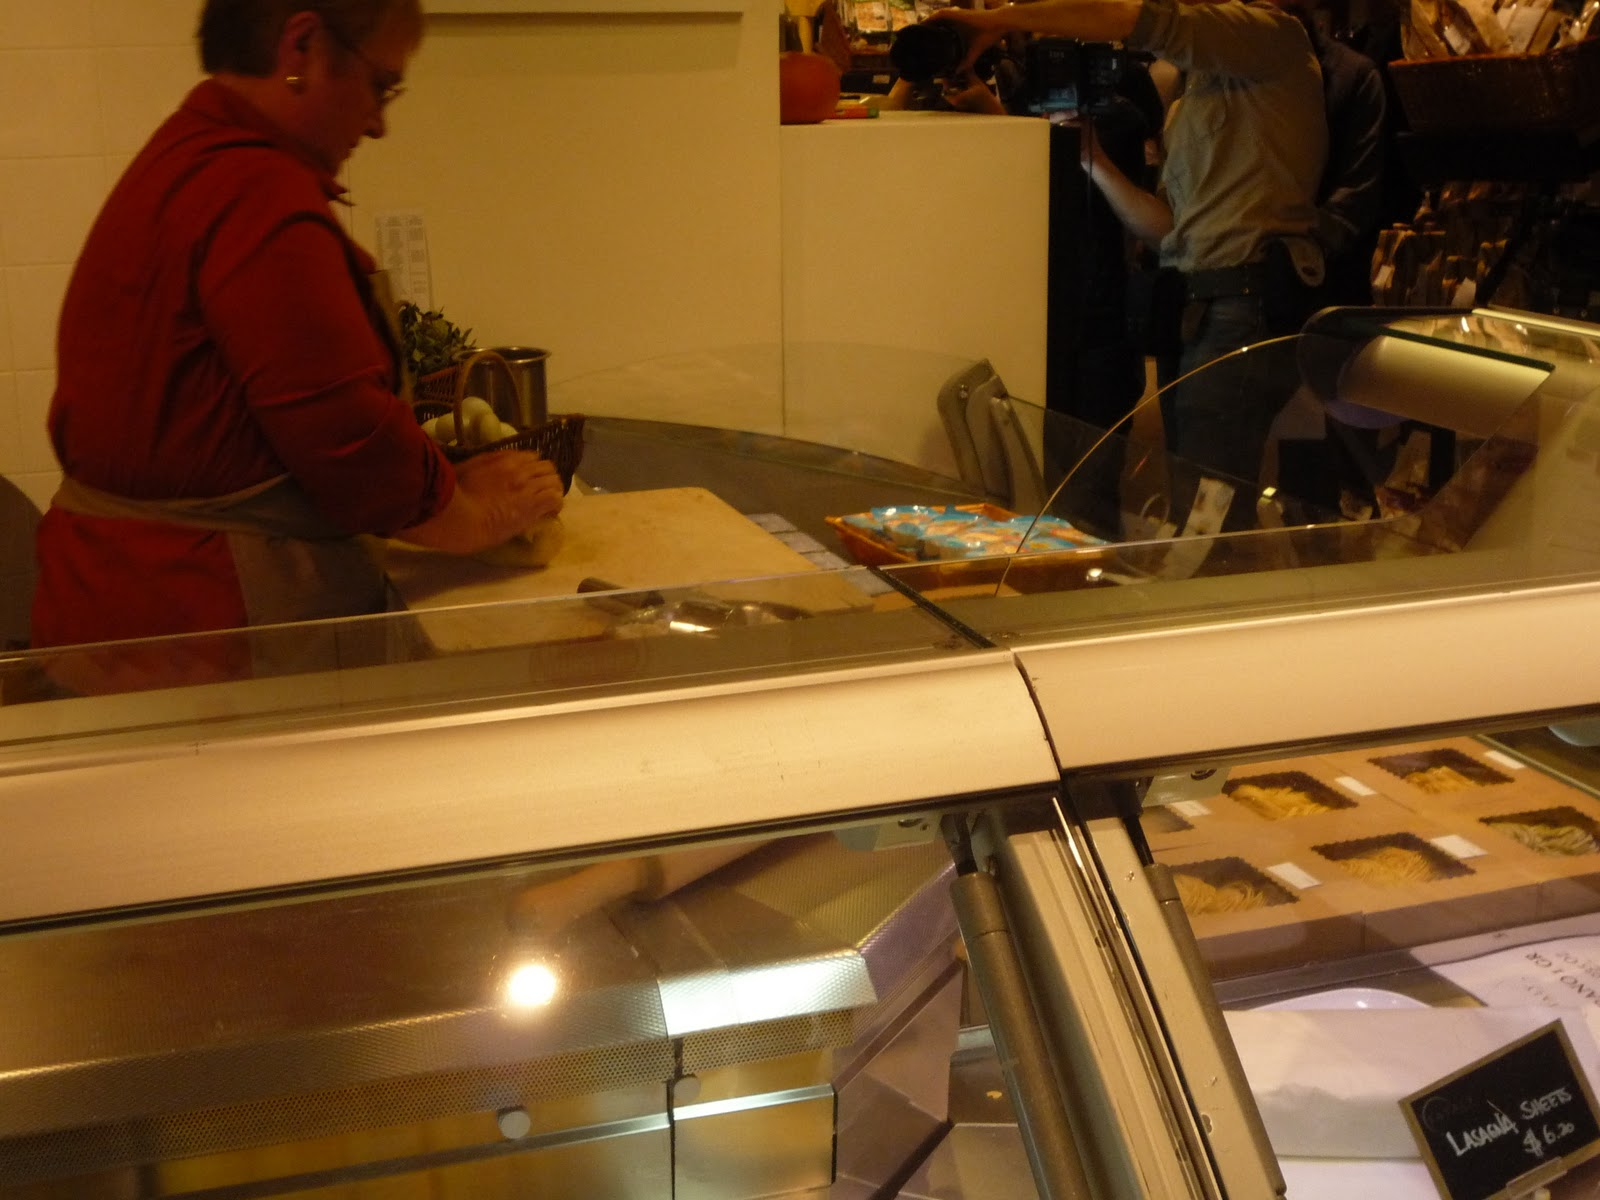 A Vist to Eataly with Pasta Making by Lidia Bastianich | The Blog ...